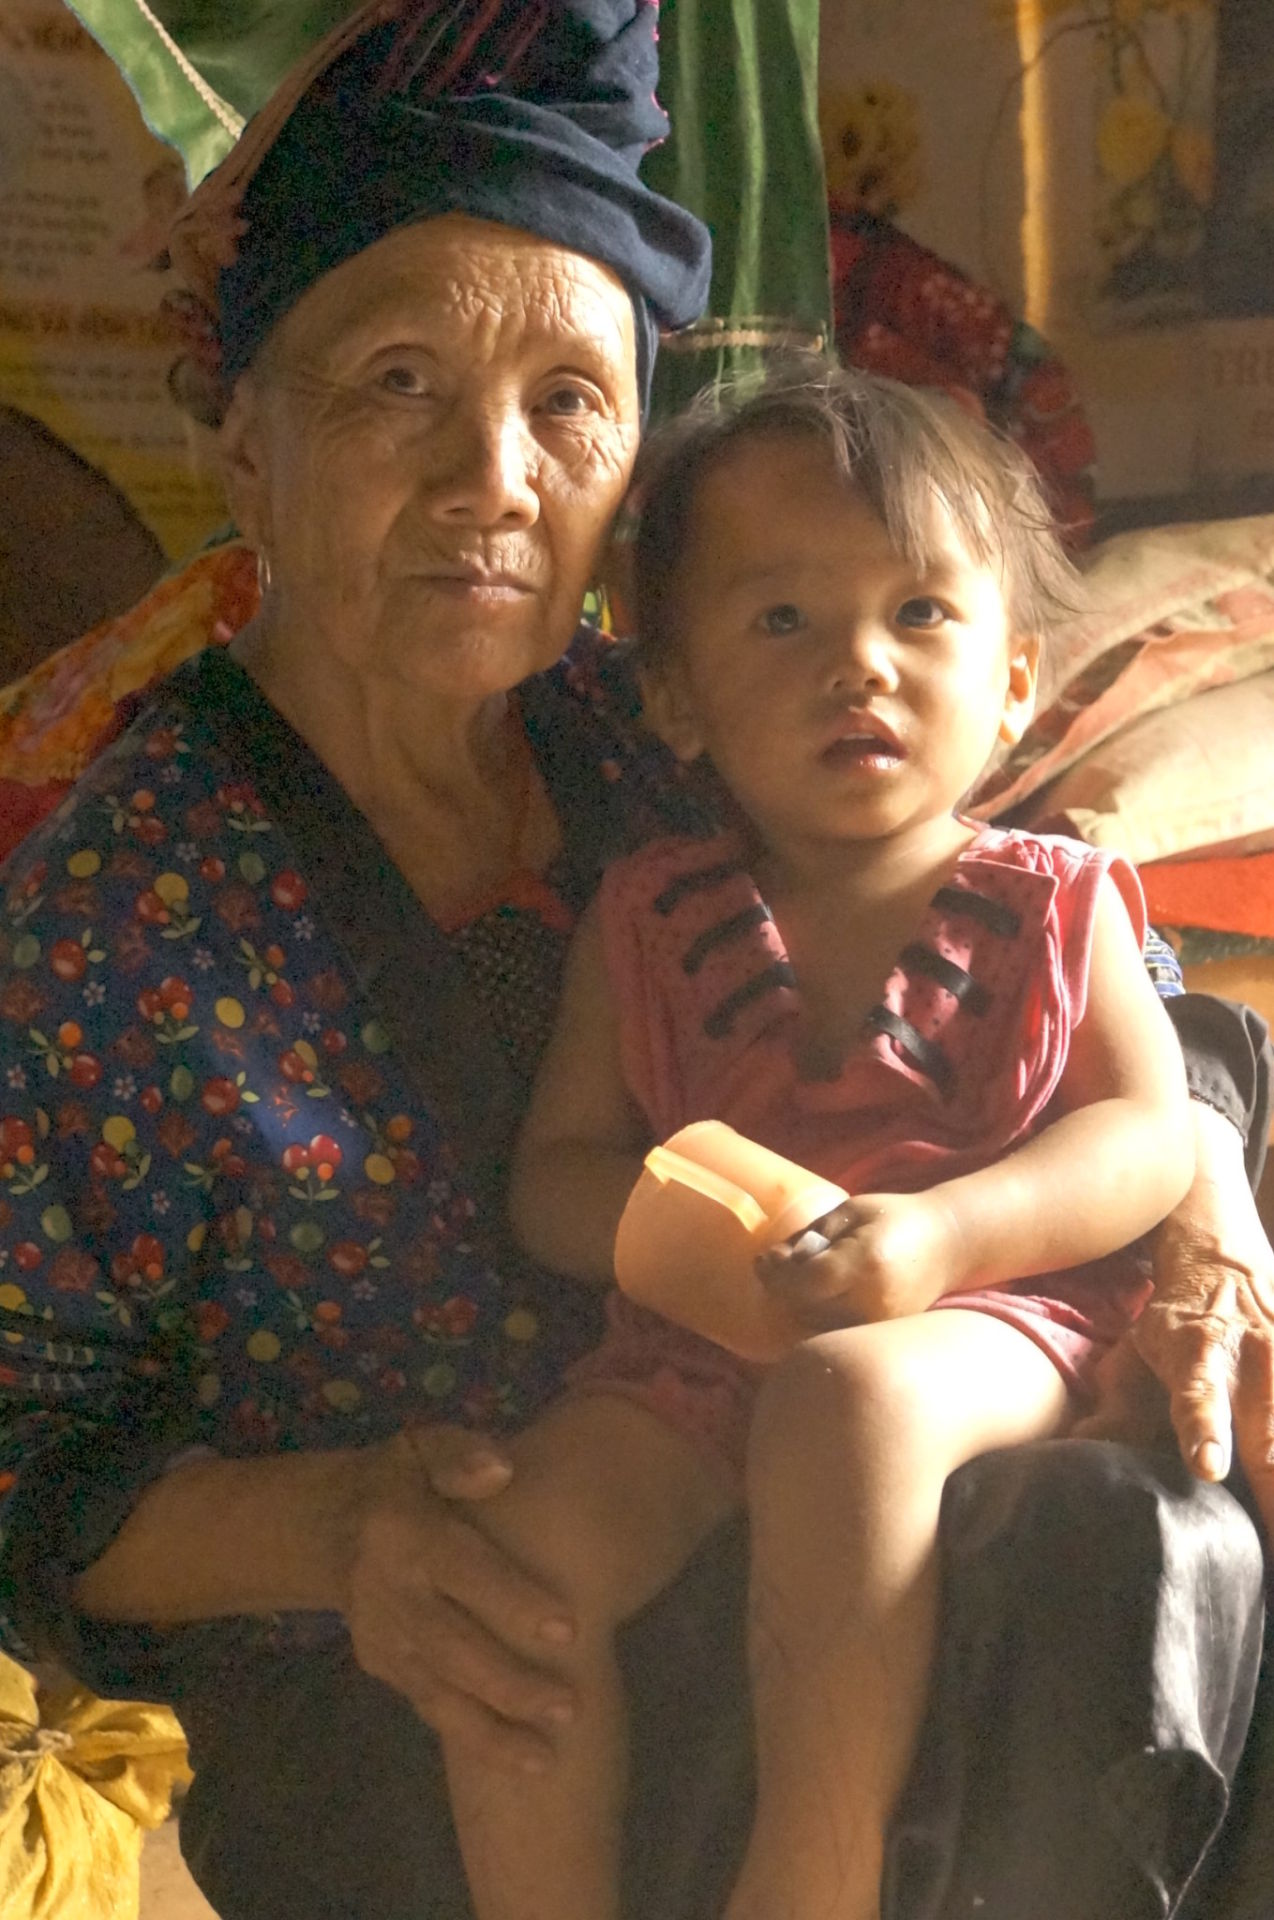 This 72 year old woman lives alone here and raises her grand daughter. She works 8-10 hour days for less than a dollar a day! Son La Province, Northern Vietnam.